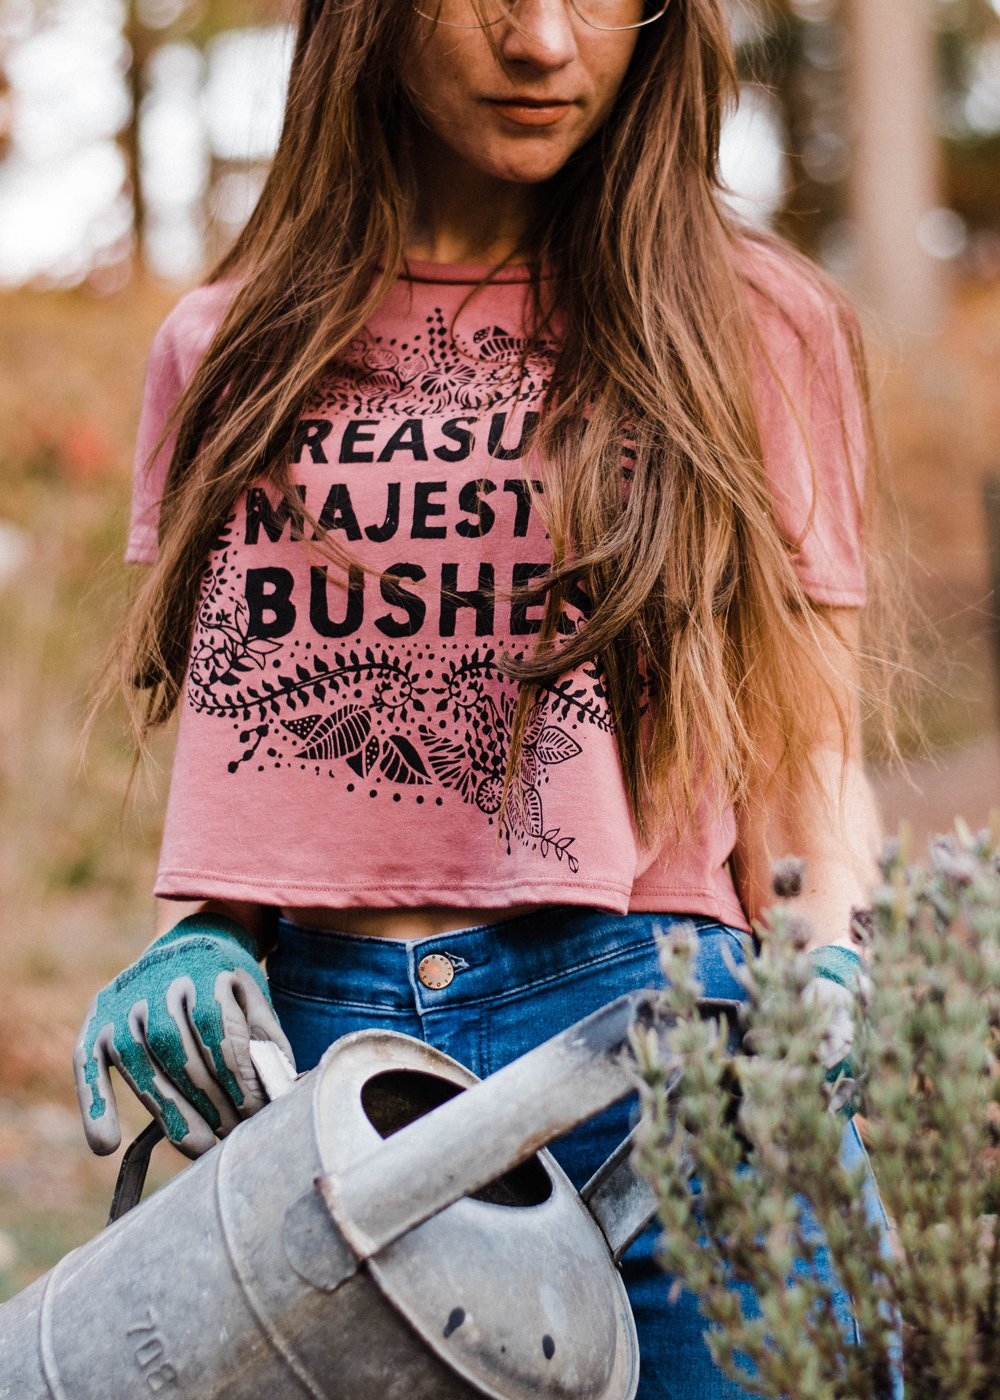 Majestic Bushes - Dusty Rose - 5% donated to Planned Parenthood